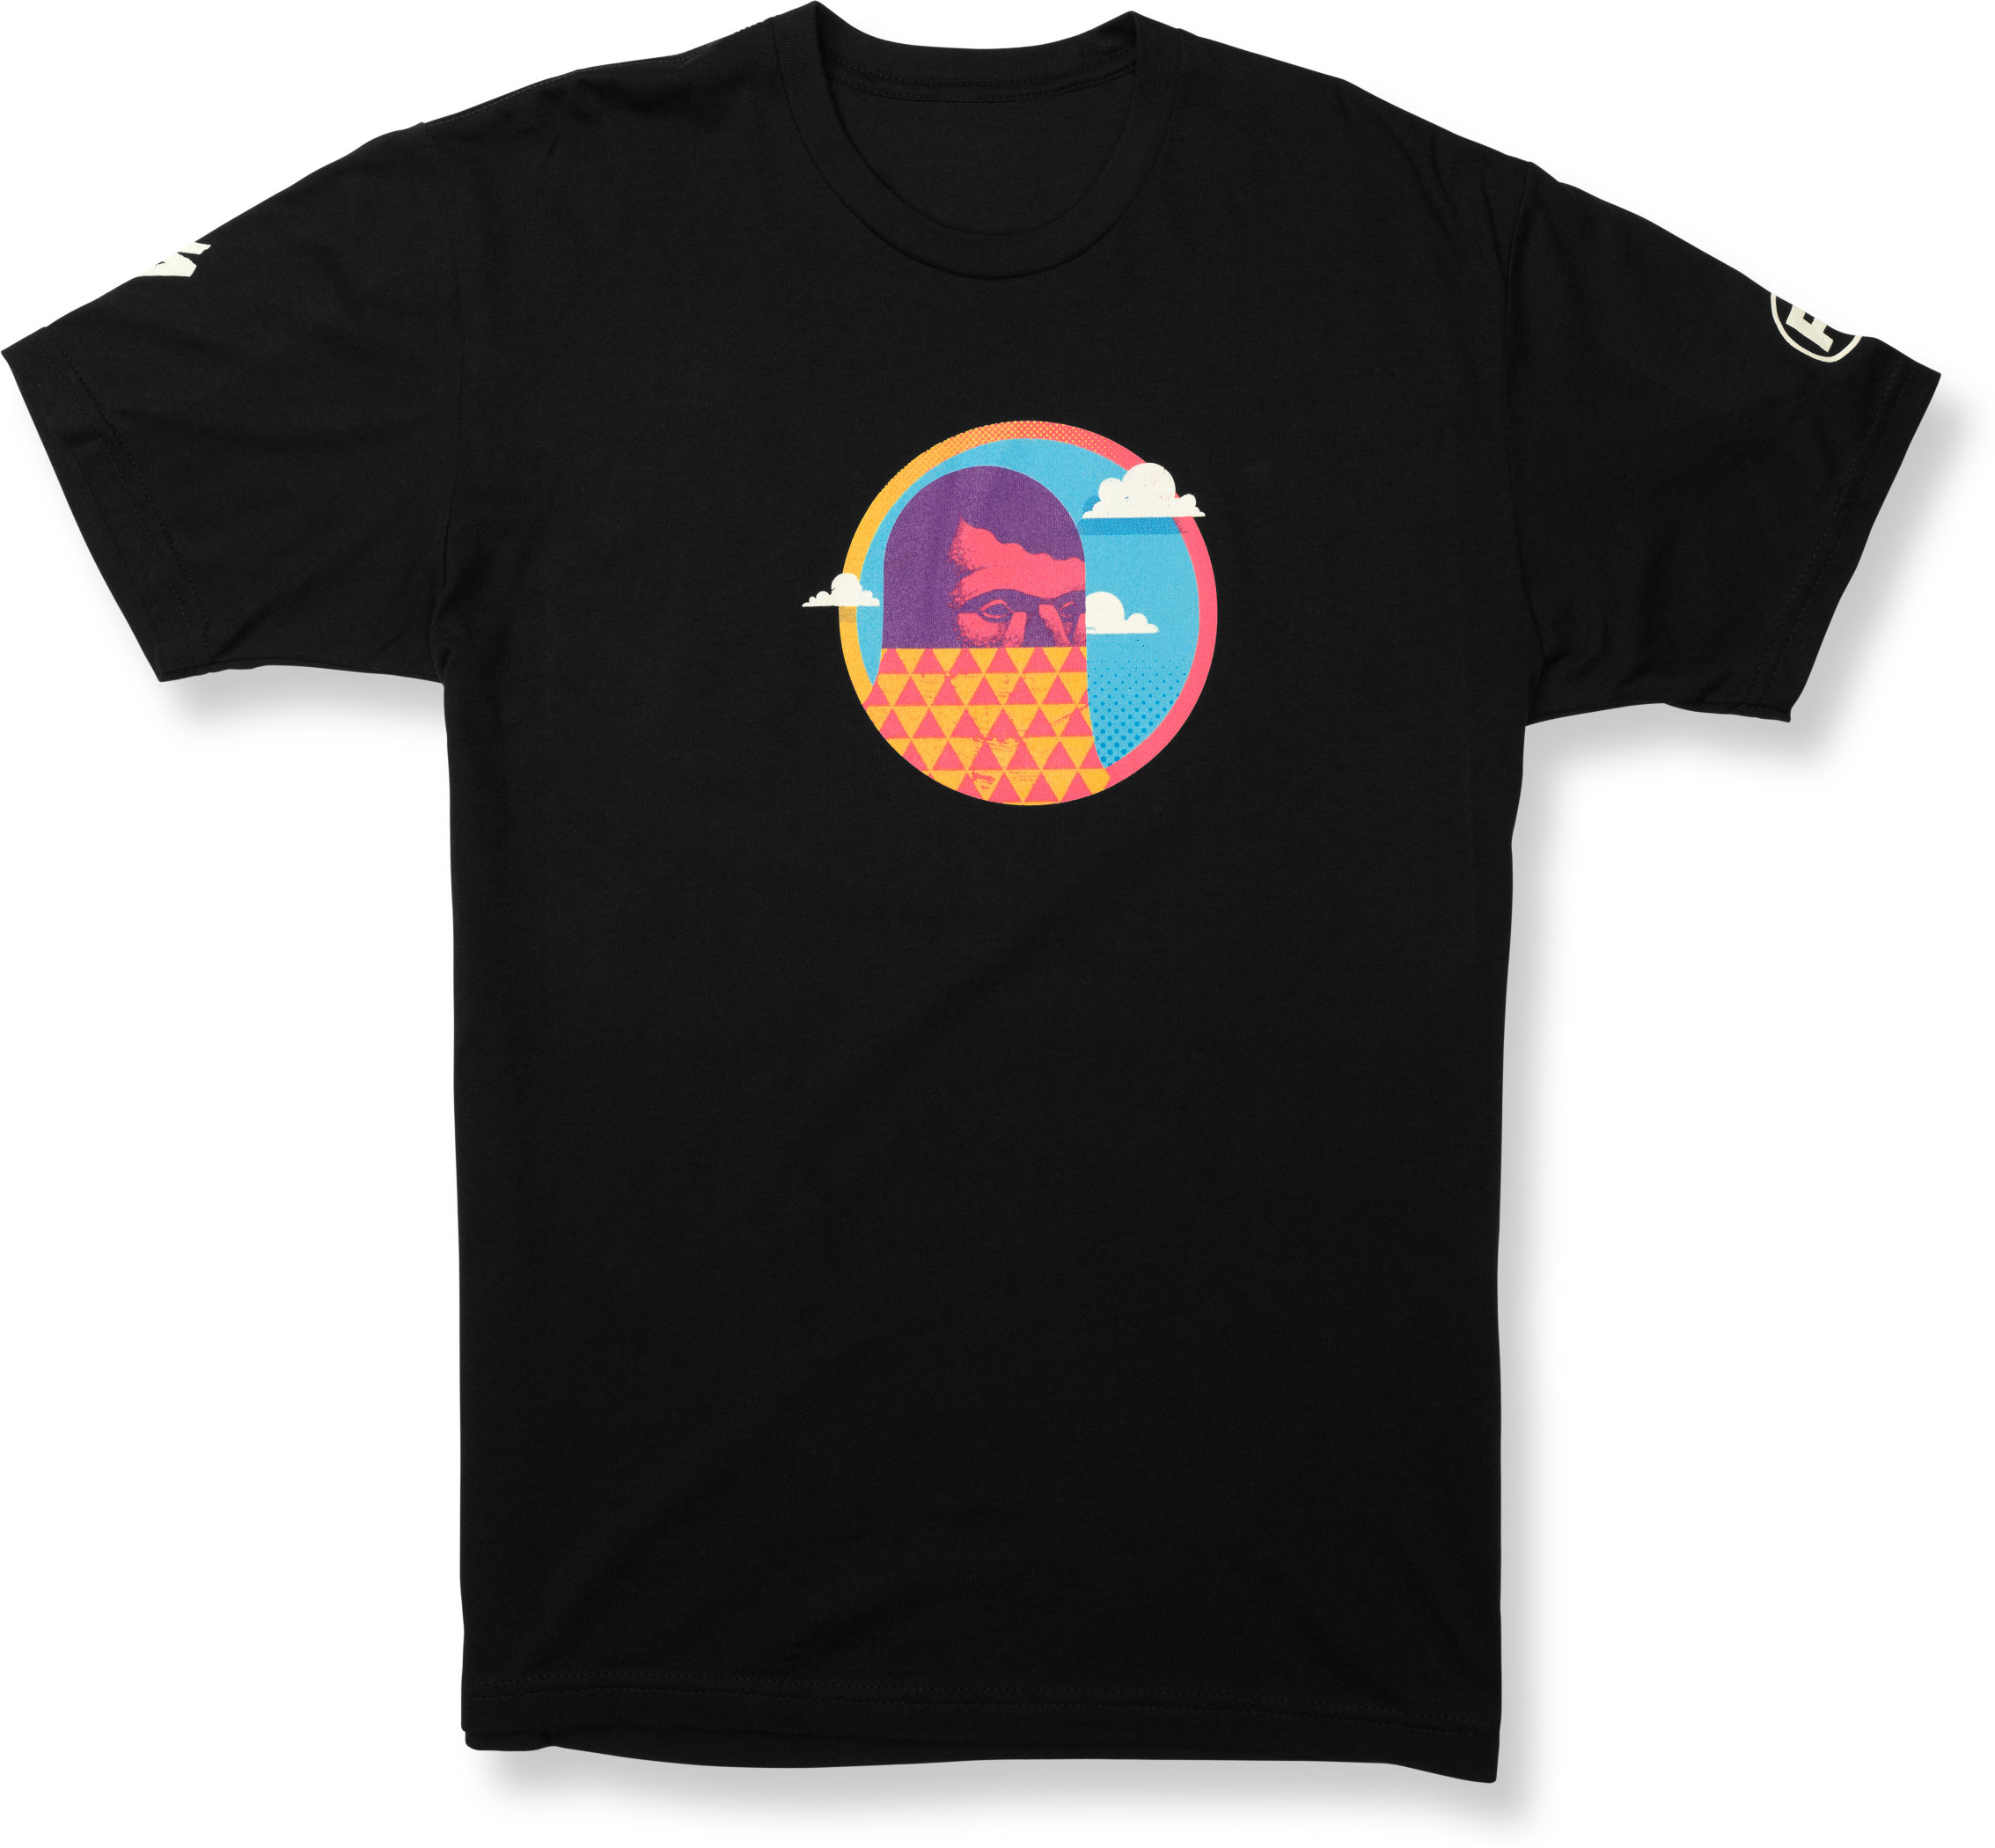 Red Hook Crit Graphic Tee | Specialized com